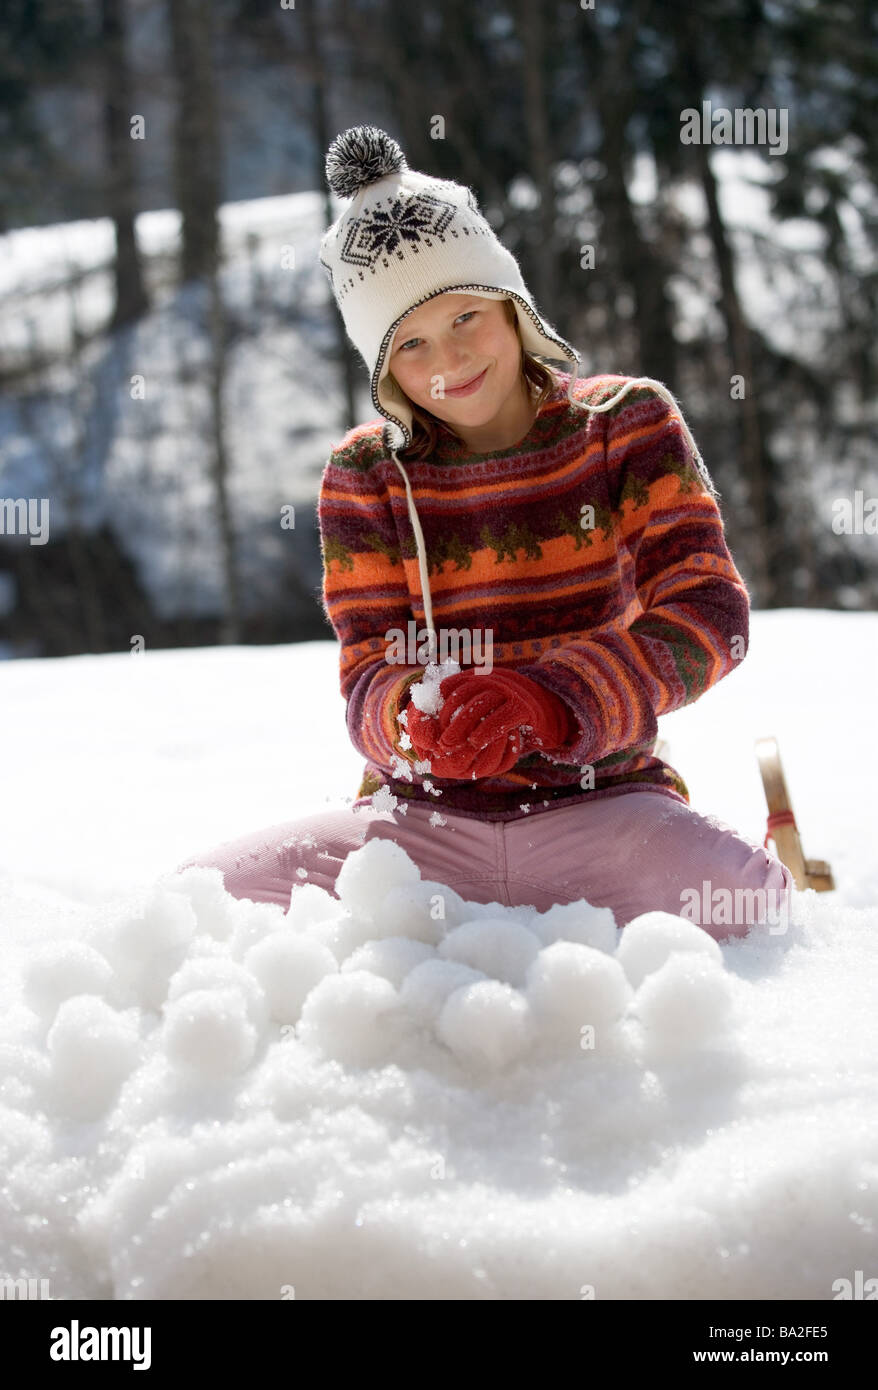 Girls cap winter-clothing smiles molds archly snowballs snow winters leisure time vacation winter-vacation vacation - Stock Image